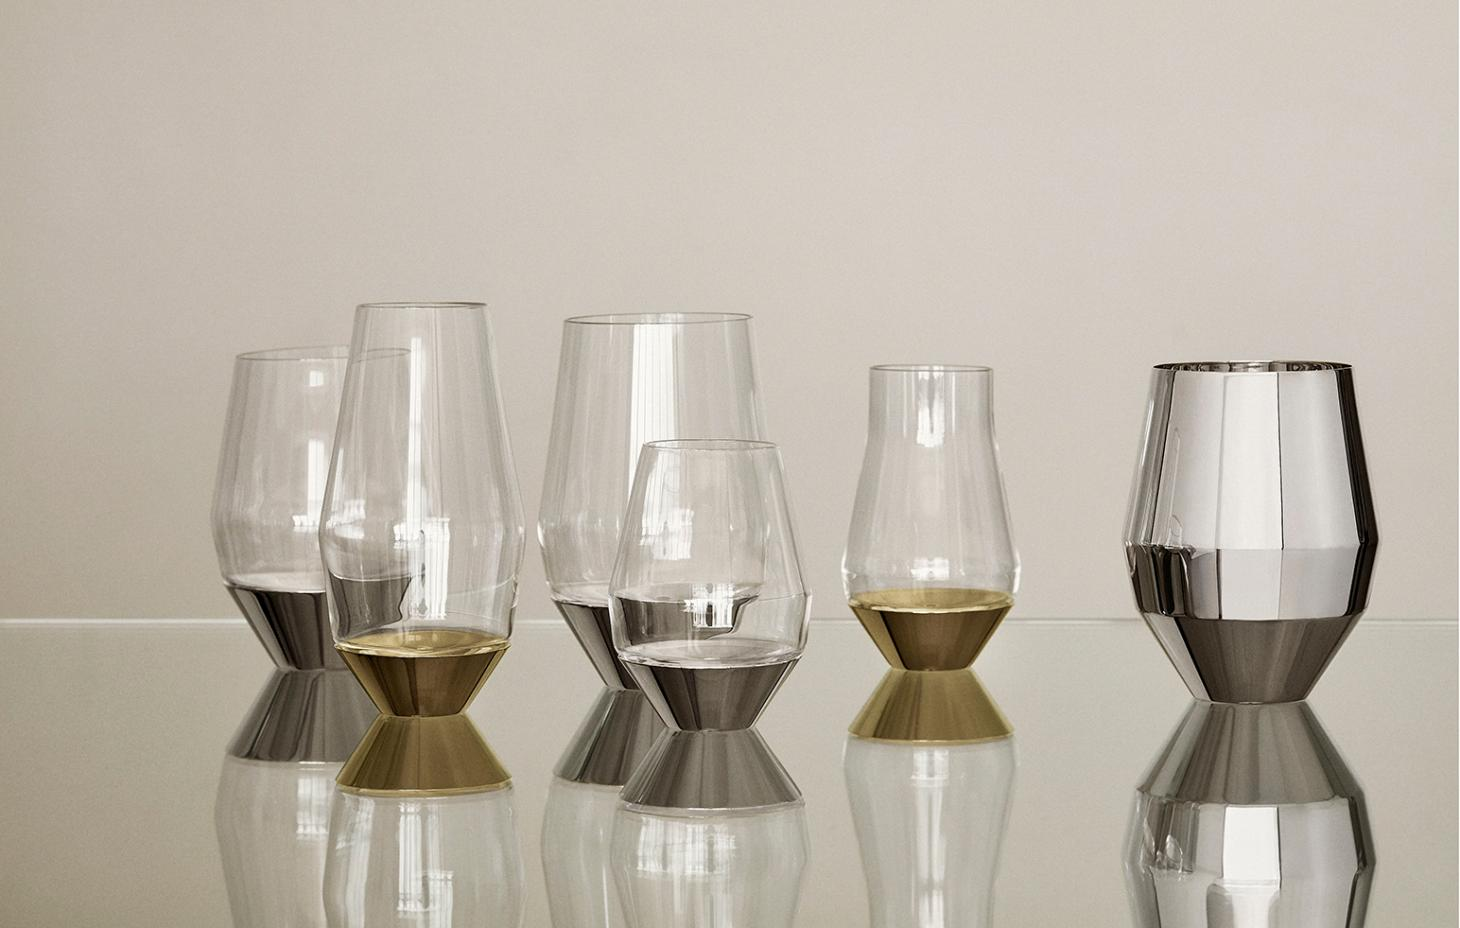 sommelier glassware by michael anasstassiades for Puiforcat